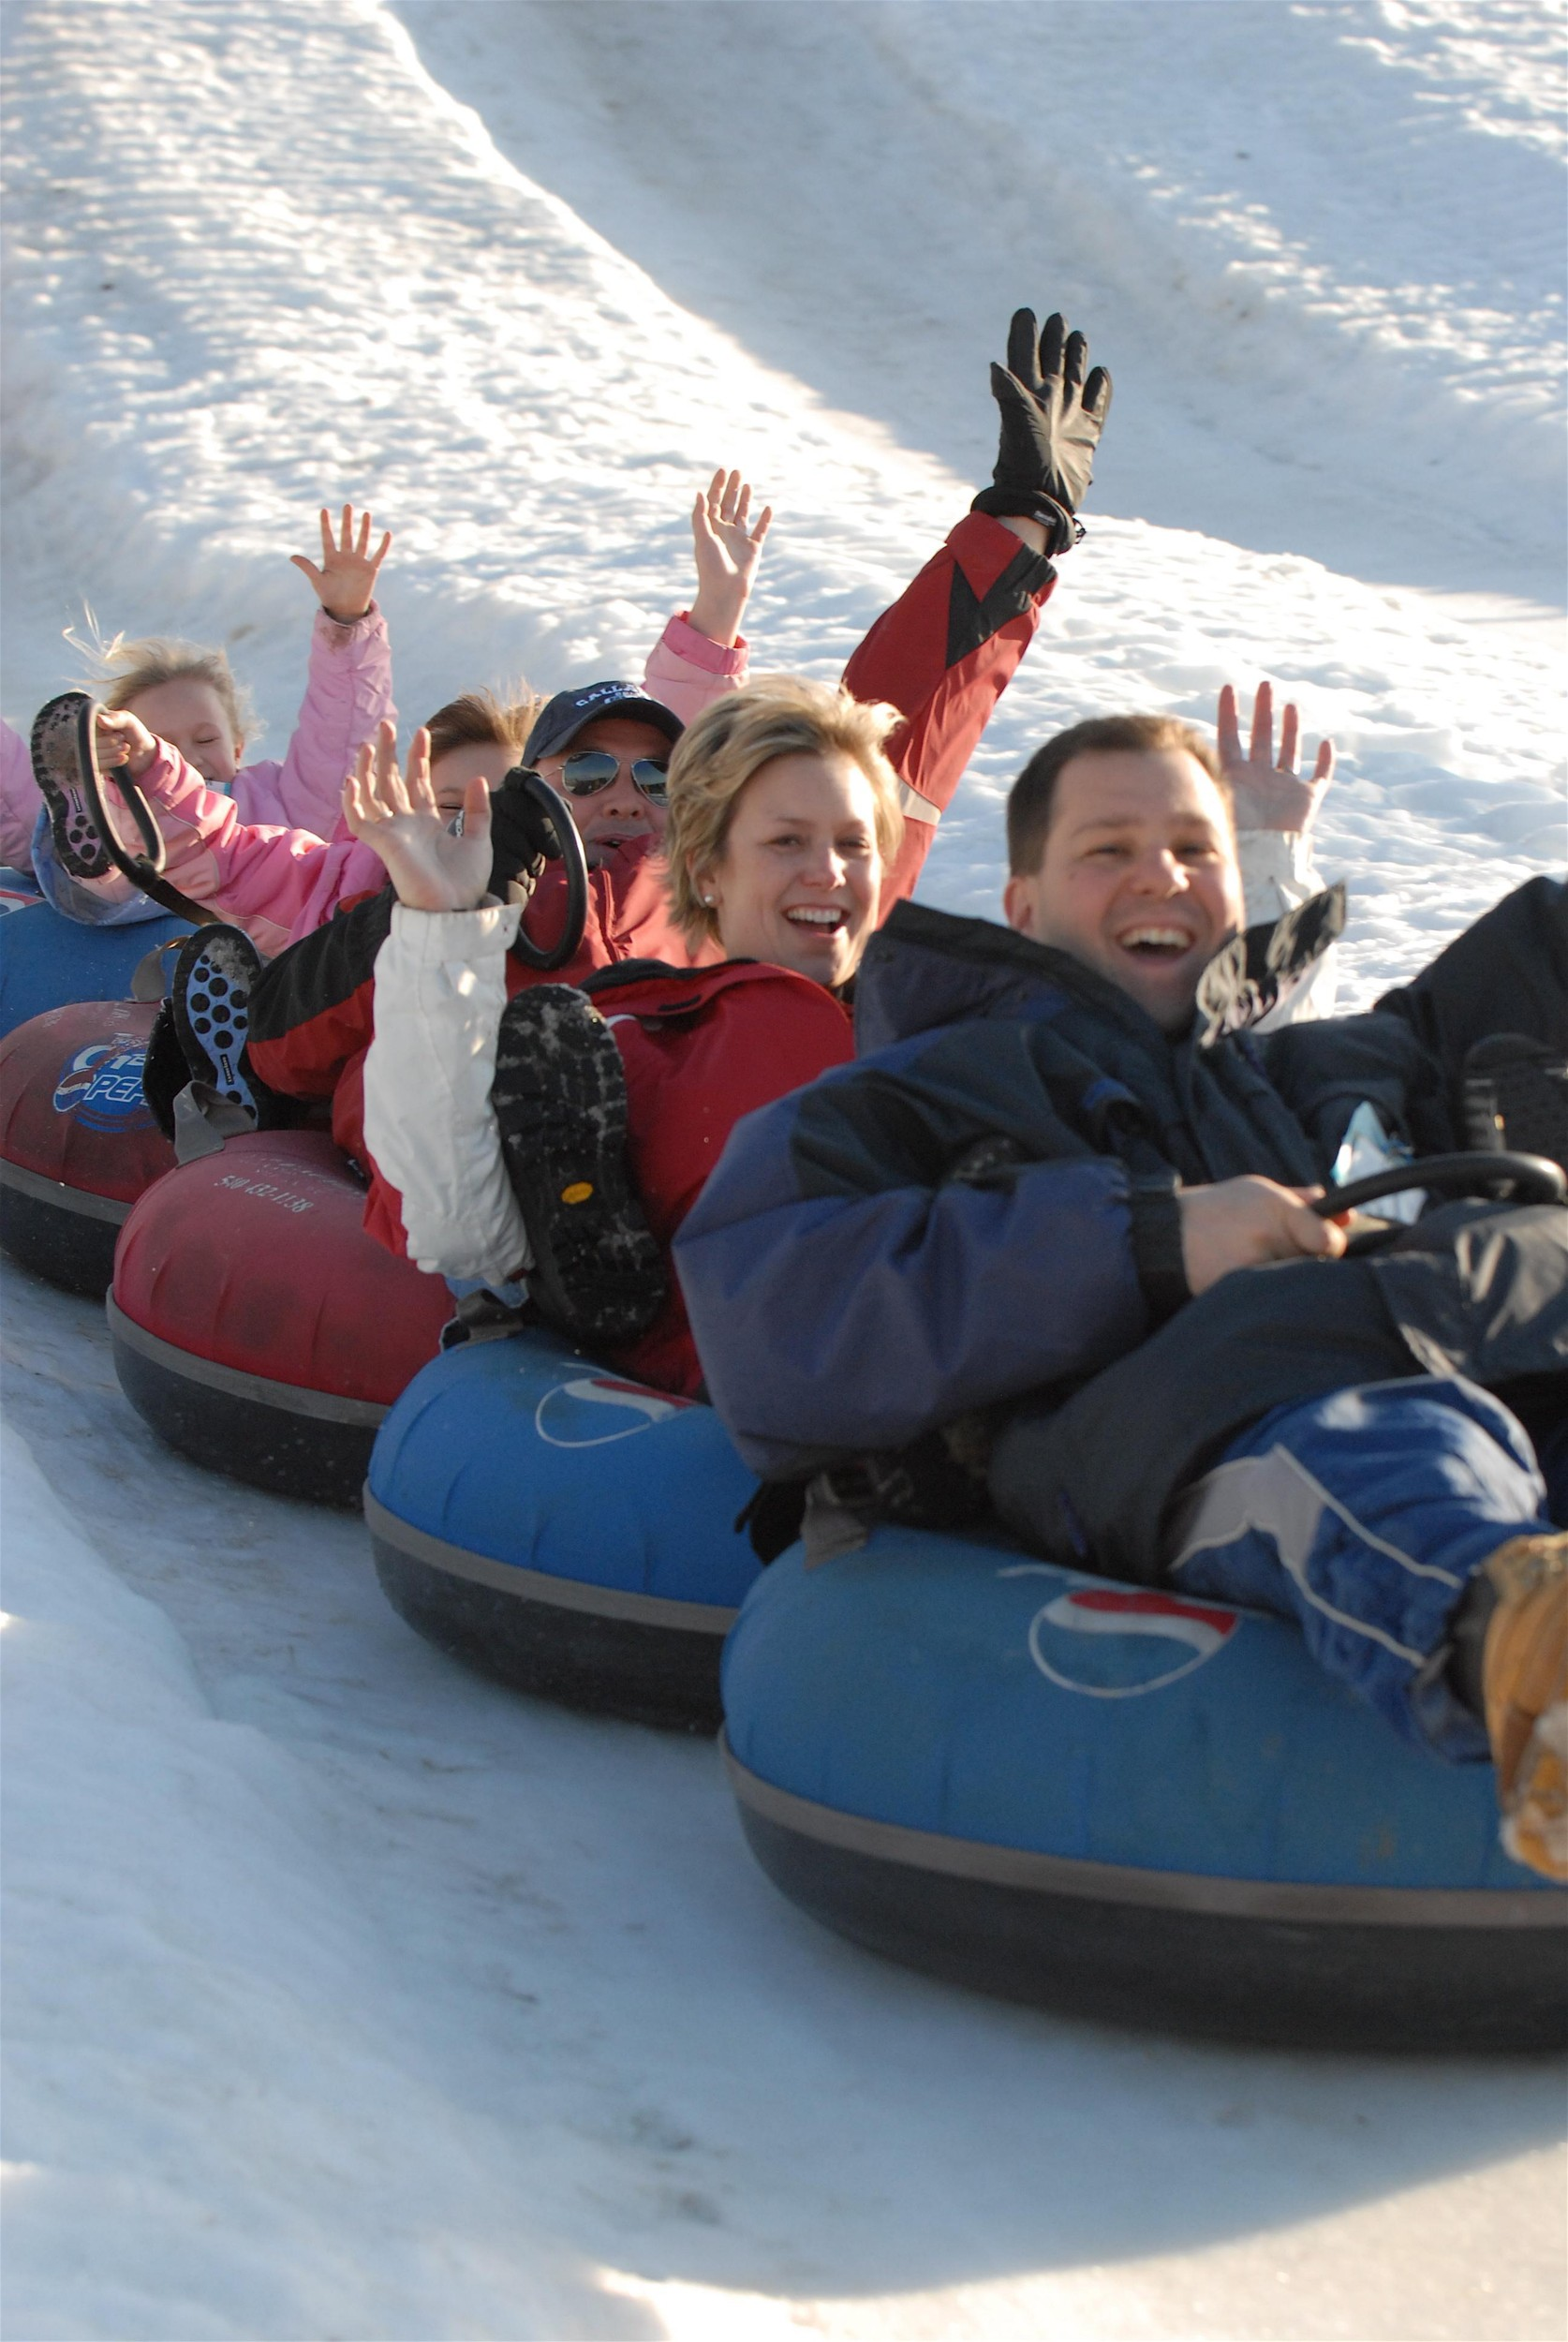 Family tubing at Bryce Resort, VA